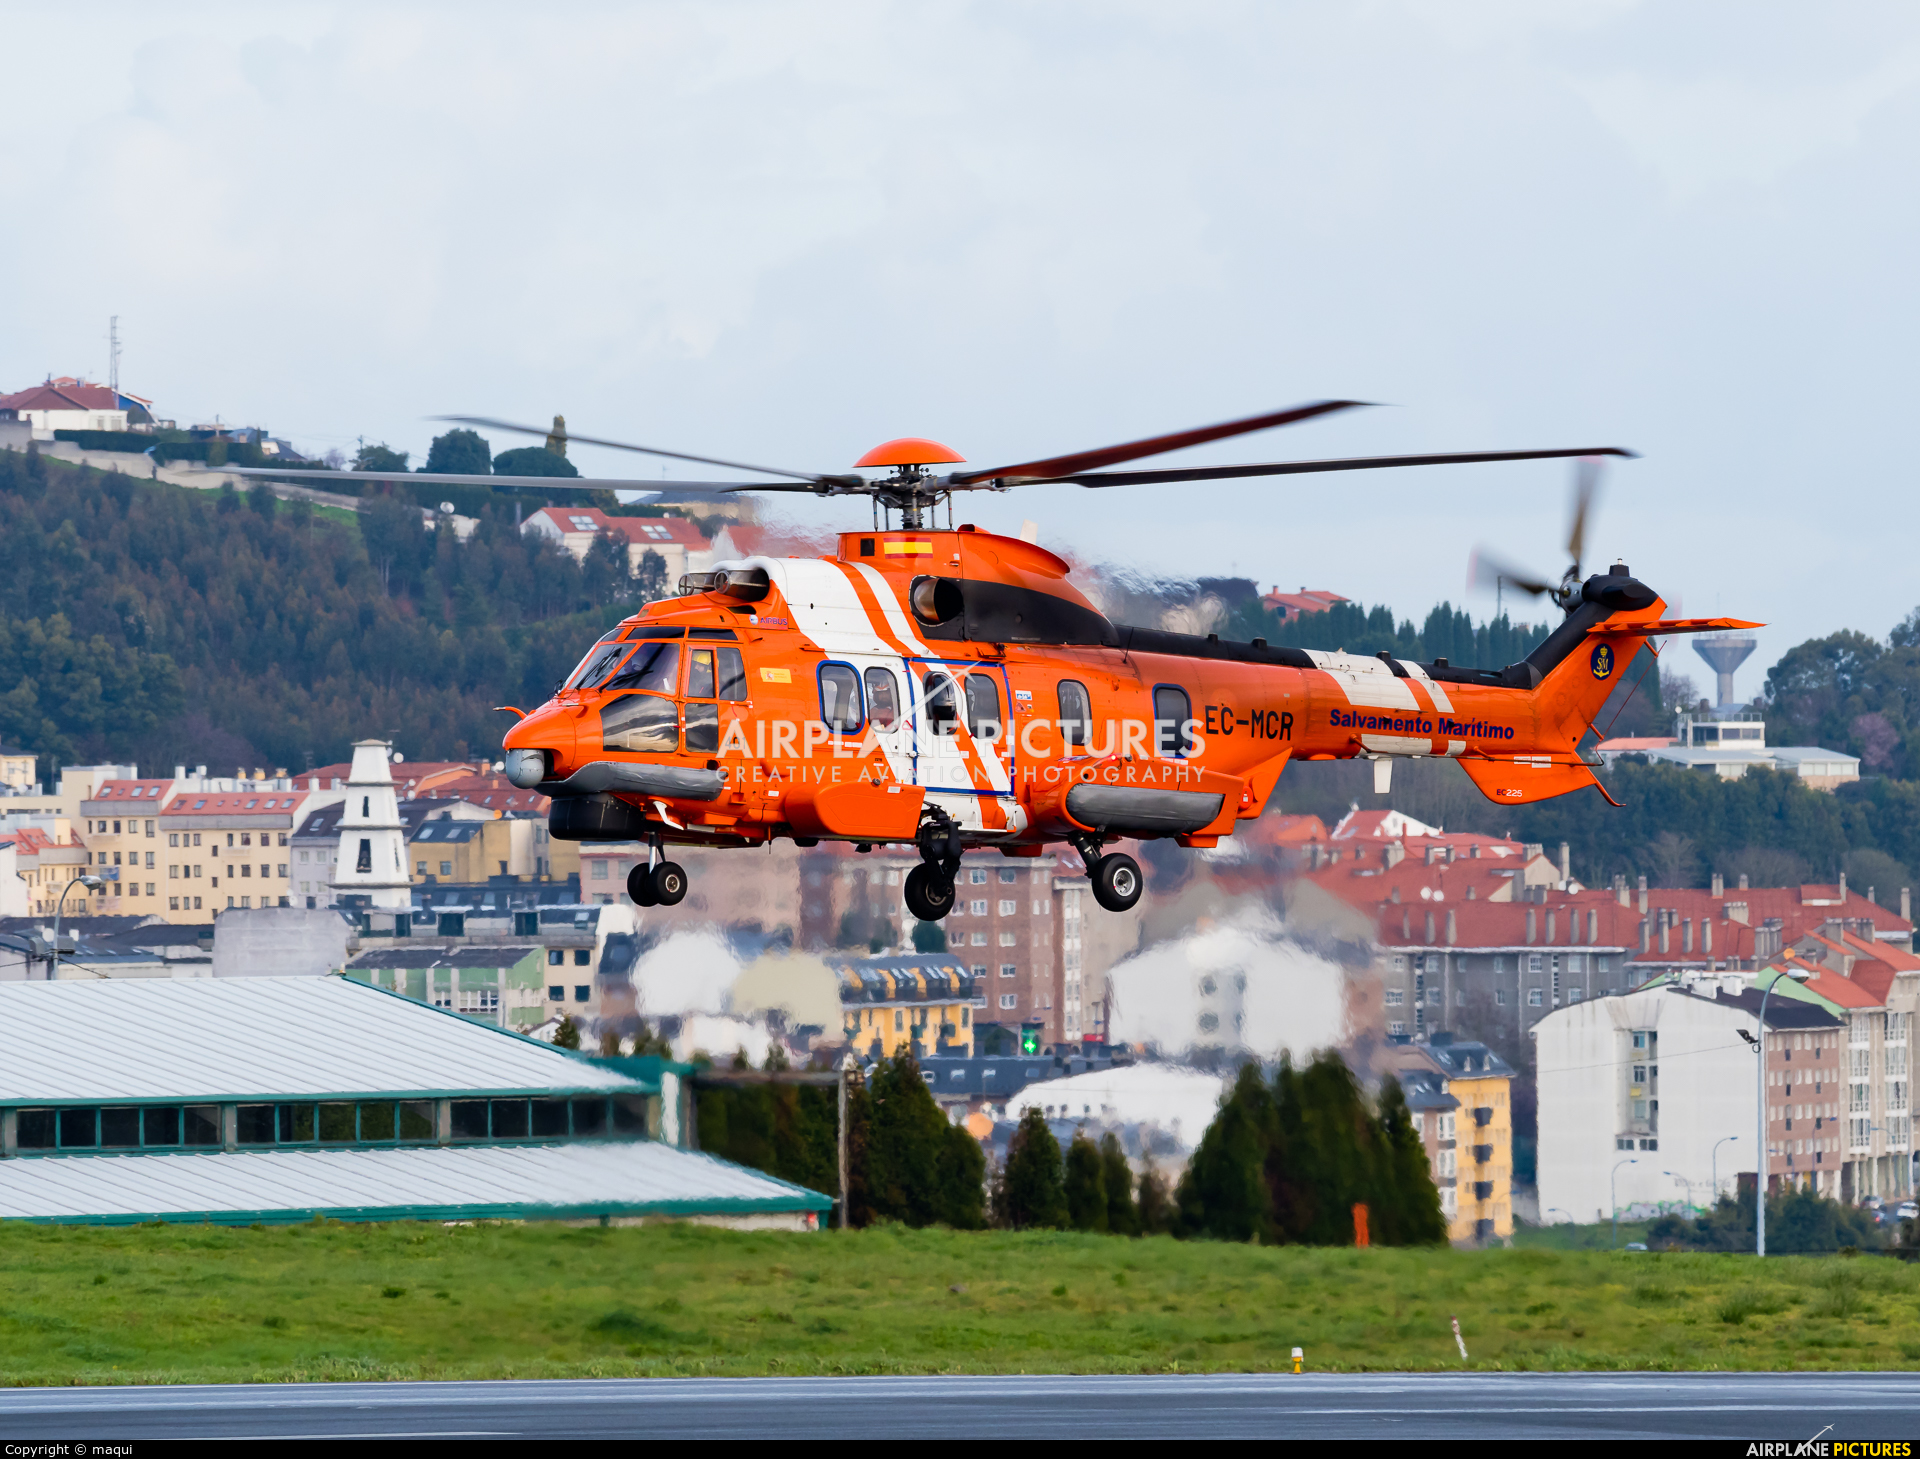 Spain - Coast Guard EC-MCR aircraft at La Coruña